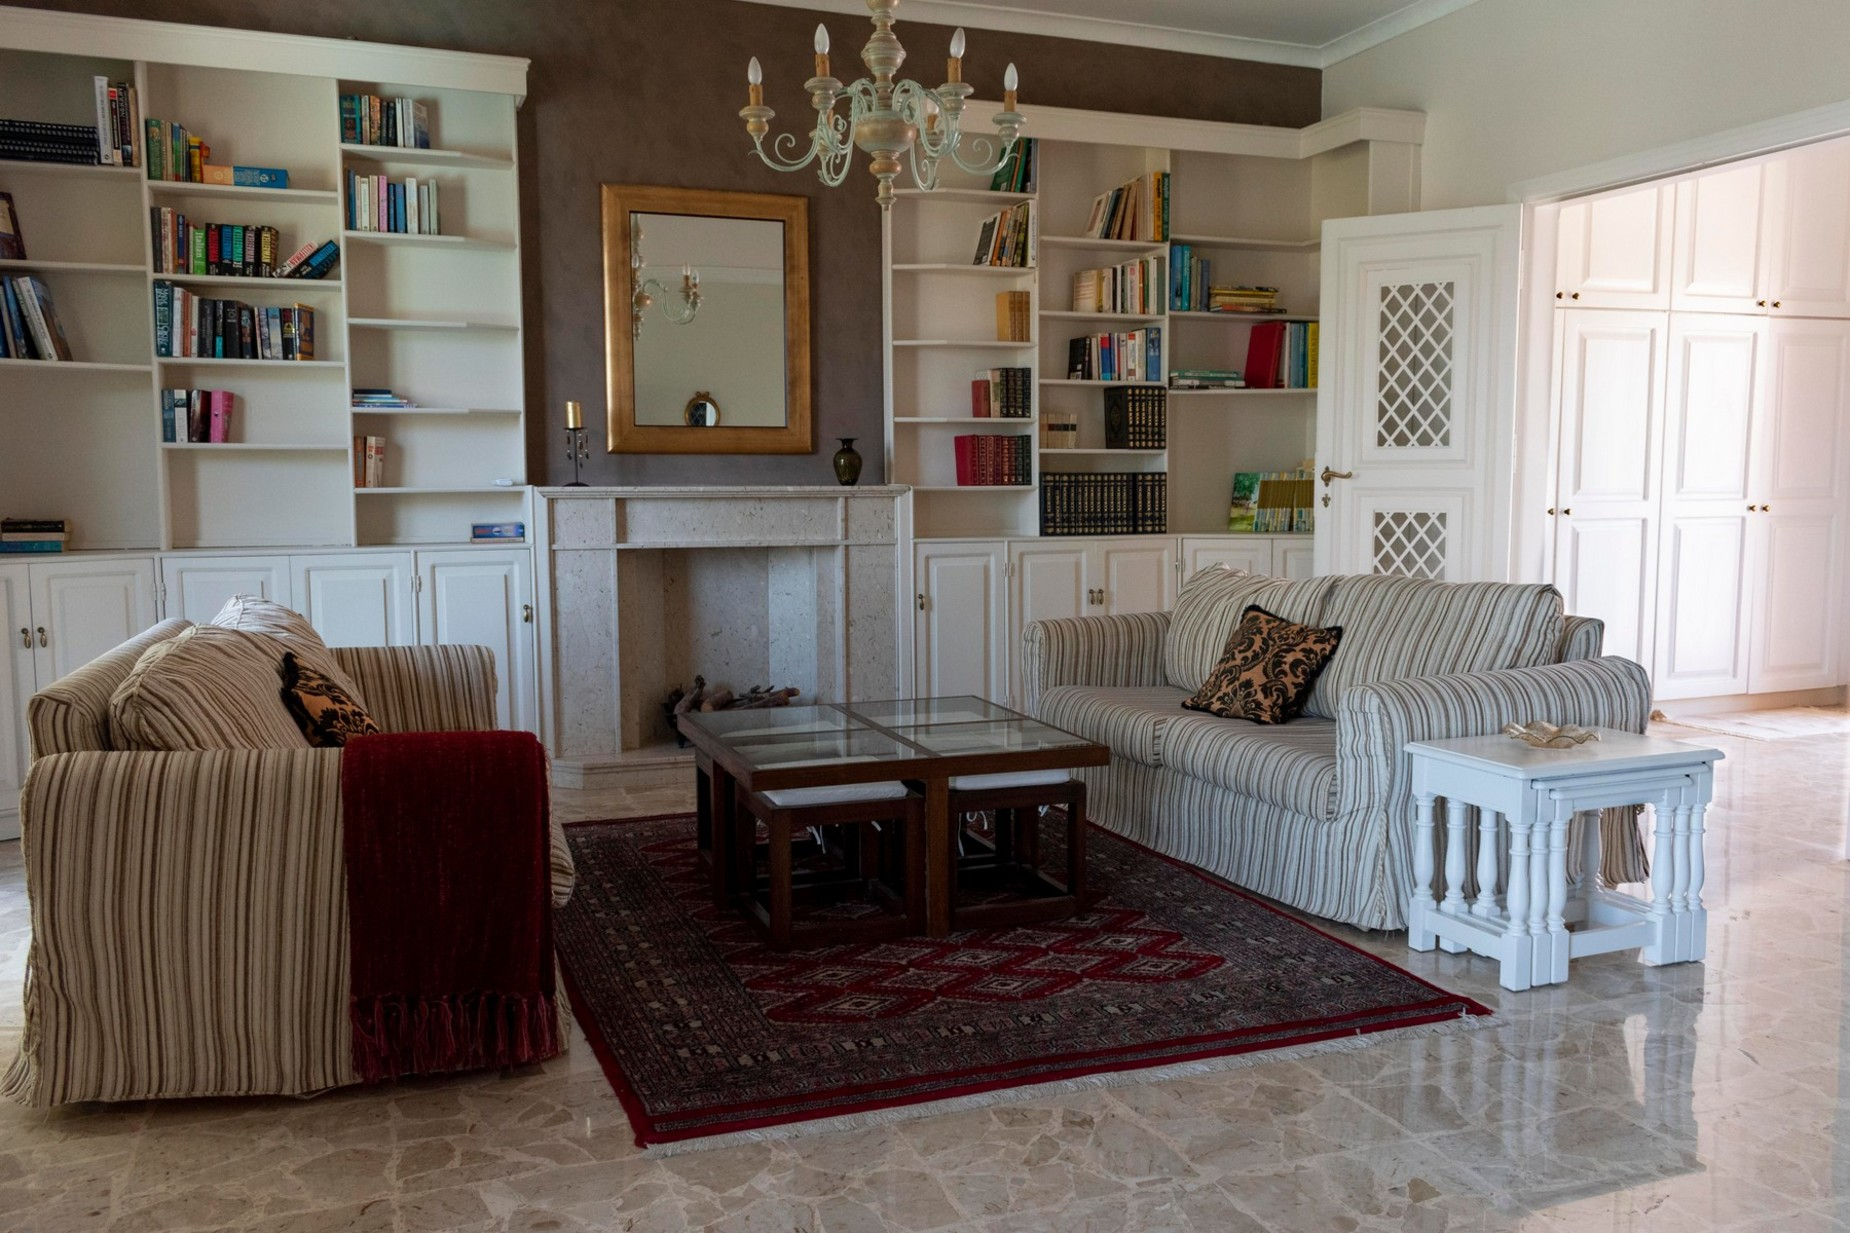 2 bed Apartment For Rent in Ibragg, Ibragg - thumb 9